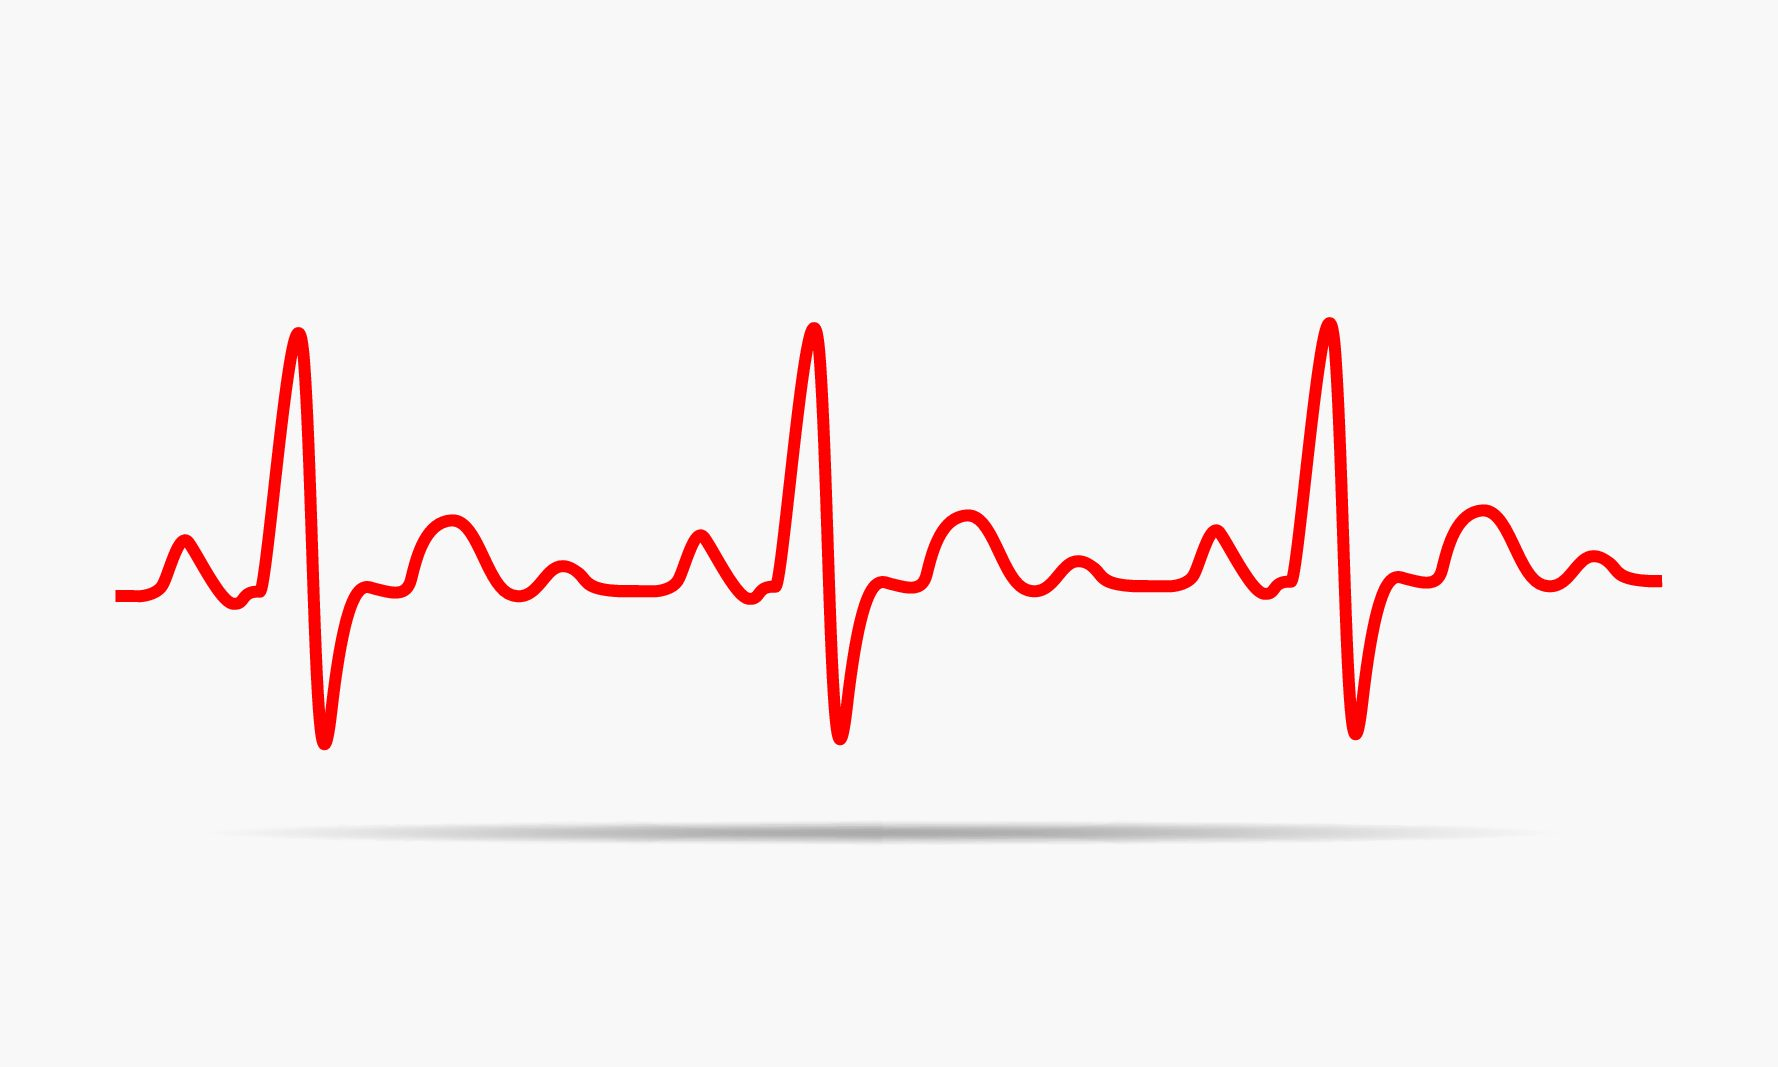 Red heartbeat icon. Vector illustration. Heartbeat sign in flat design. (Shutterstock/Haali).